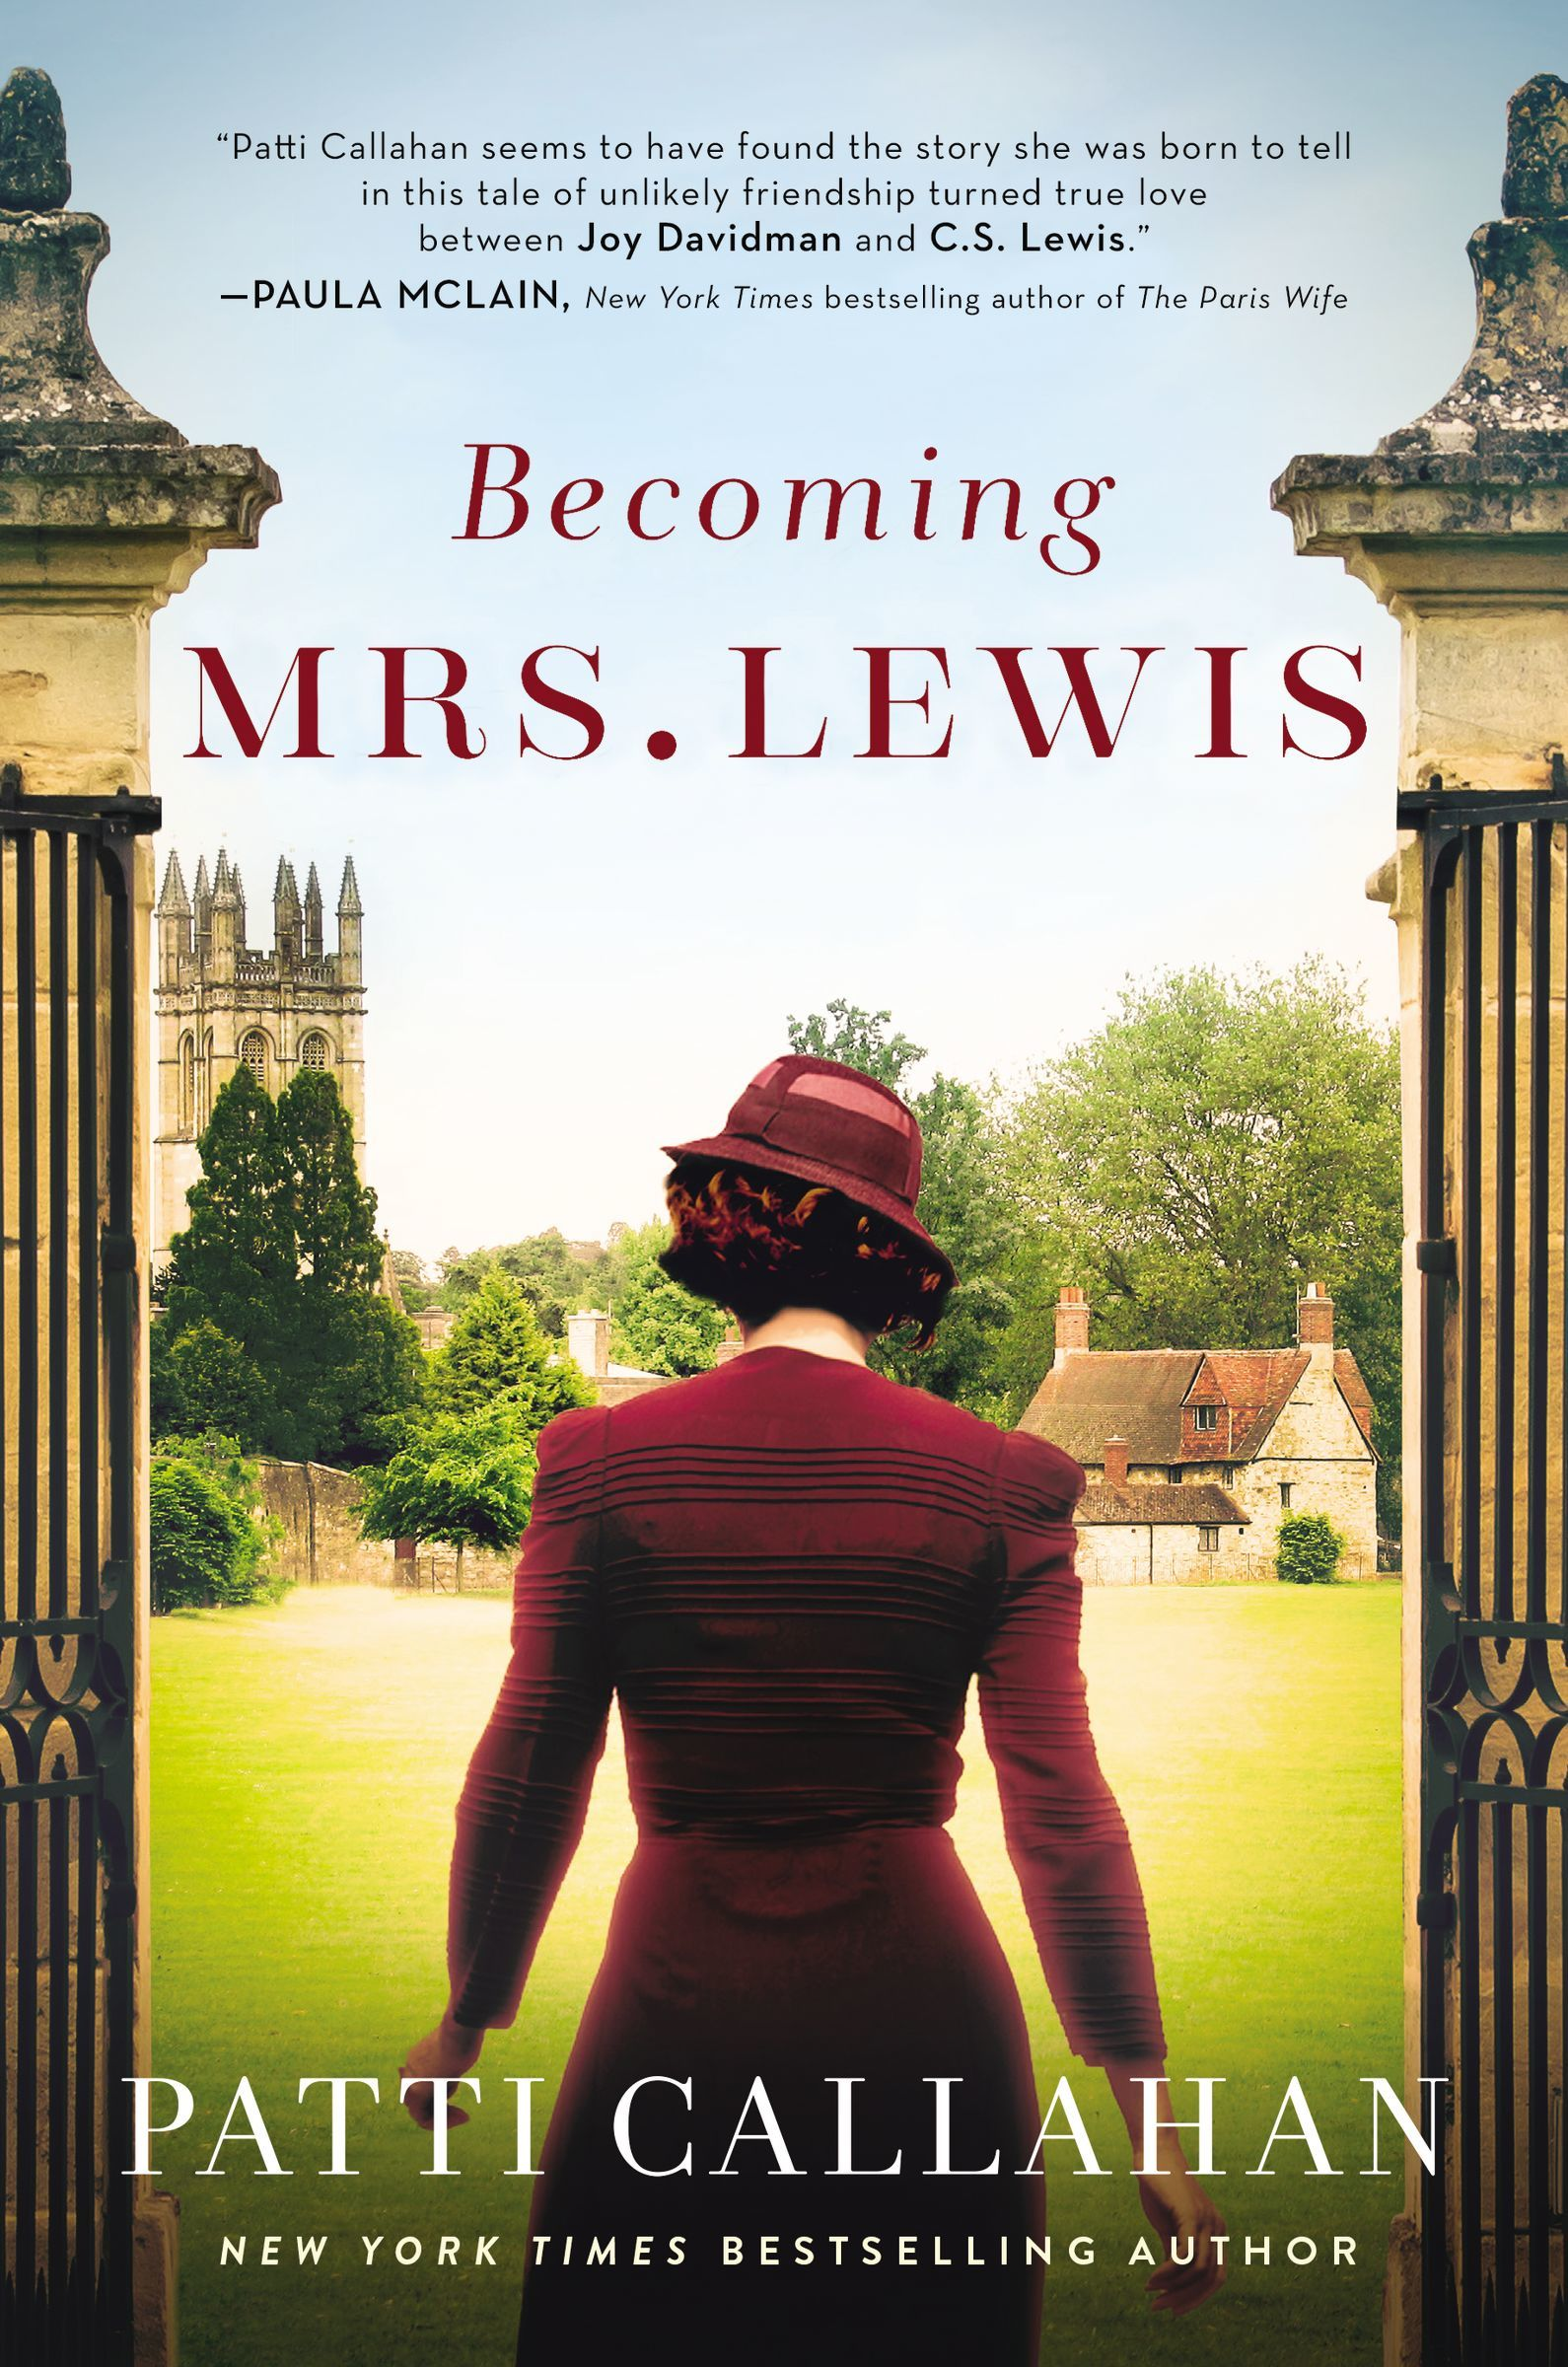 Becoming Mr. Lewis